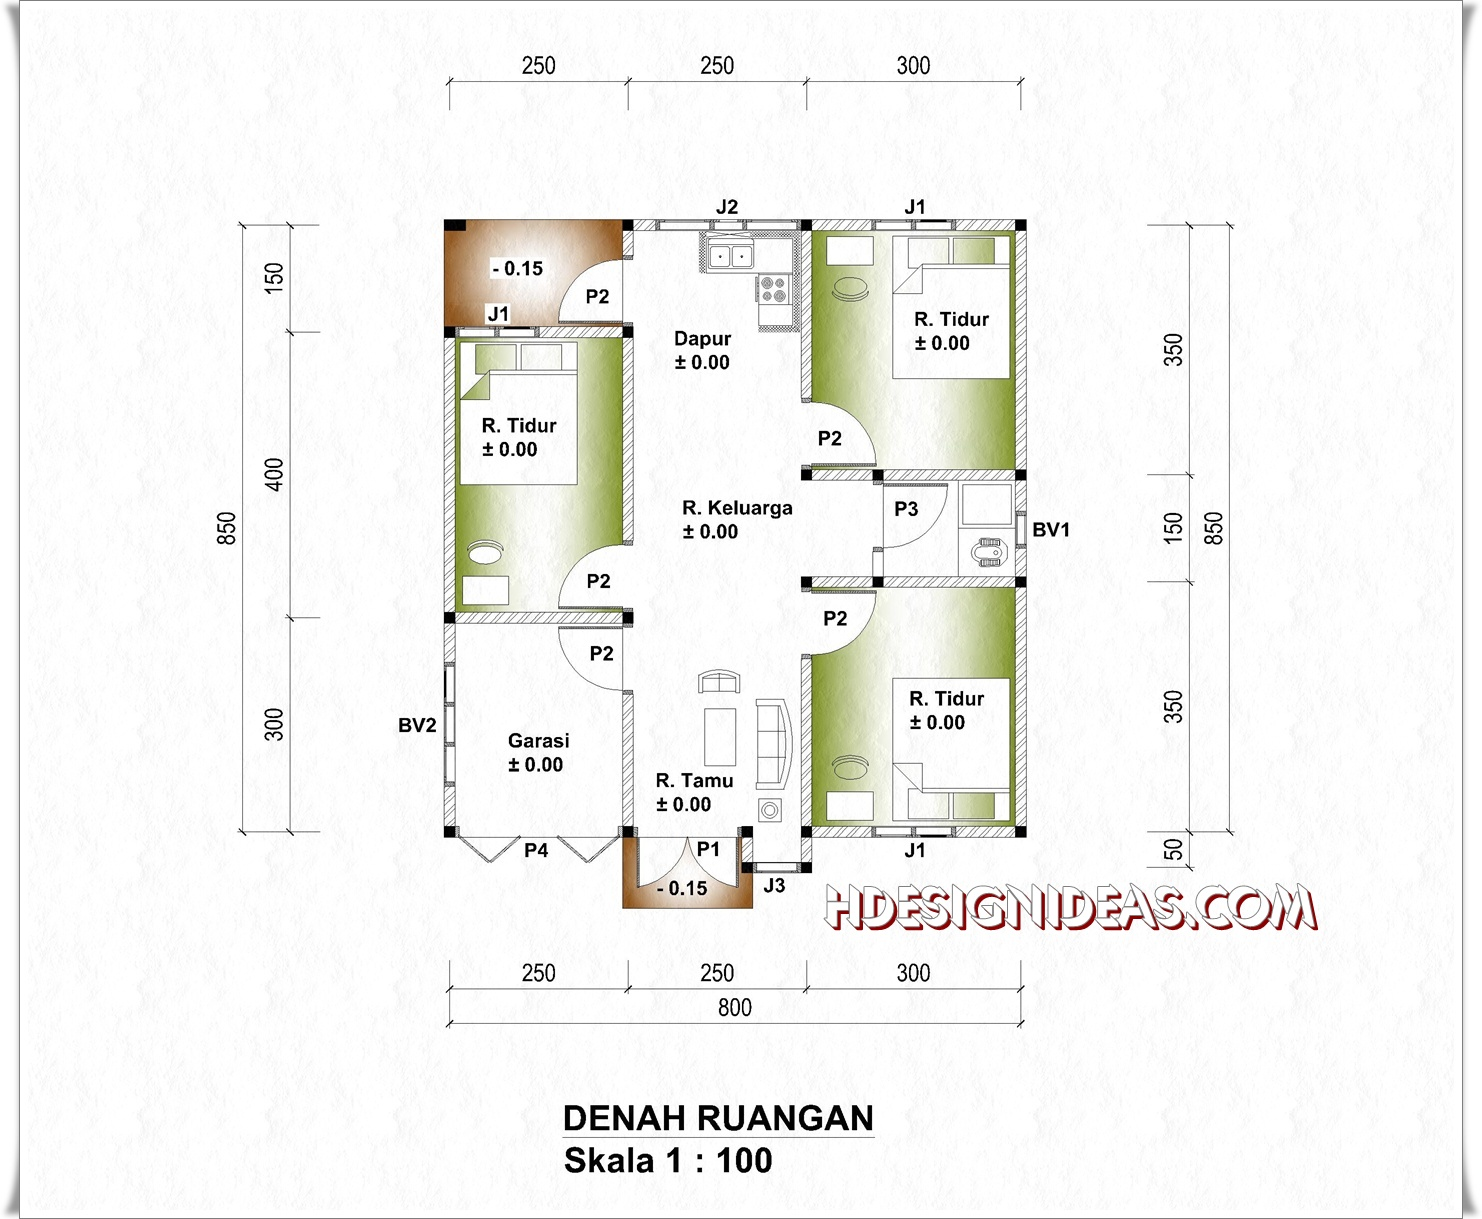 Denah Rumah Tinggal Ukuran 8 M X 85 M Home Design And Ideas